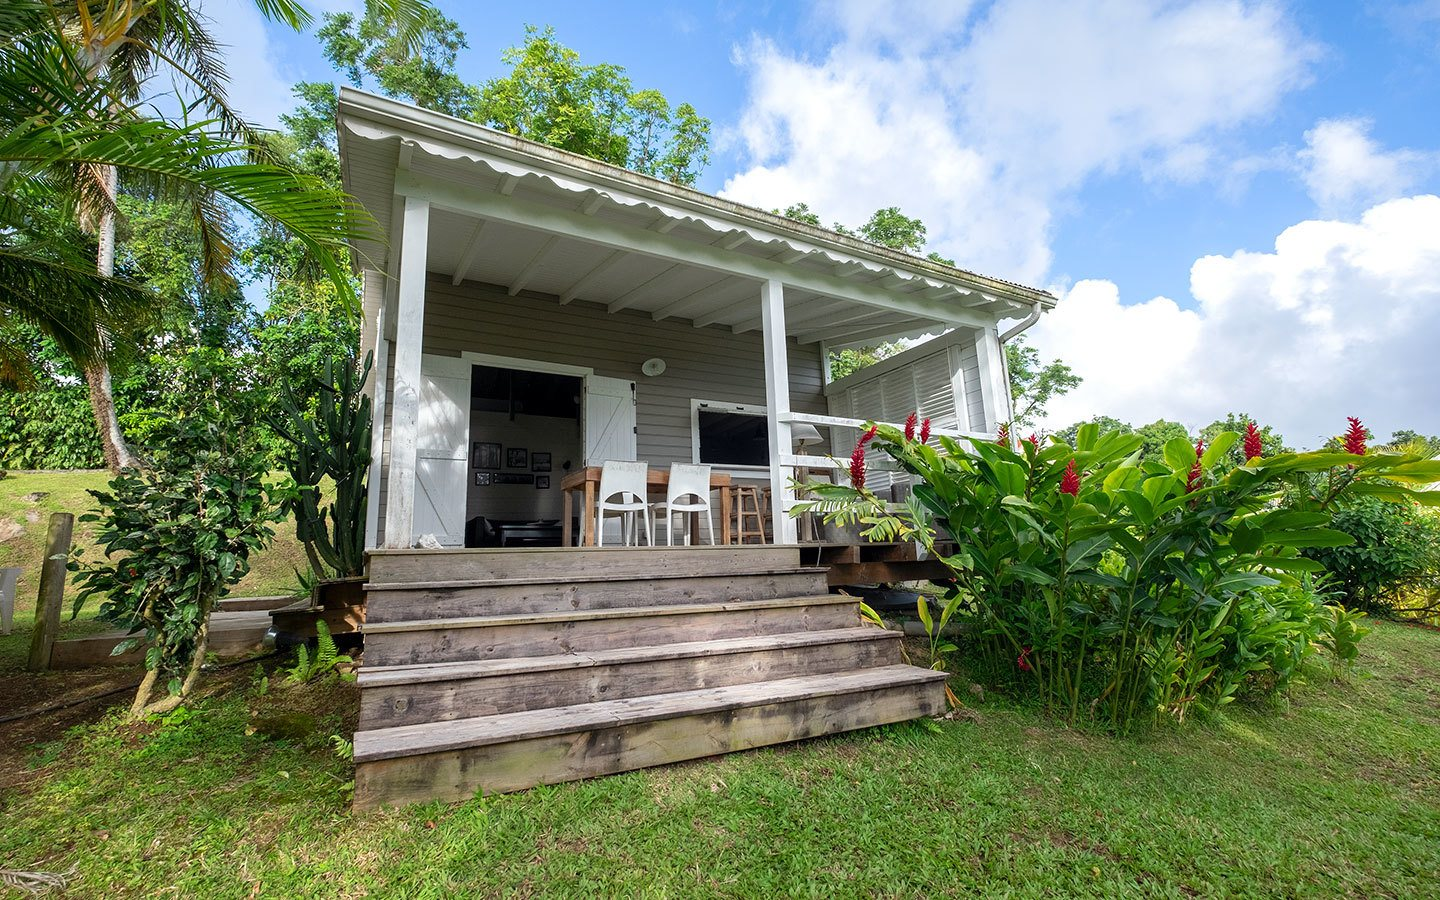 AirBnB cabin in the hills of Basse-Terre, Guadeloupe